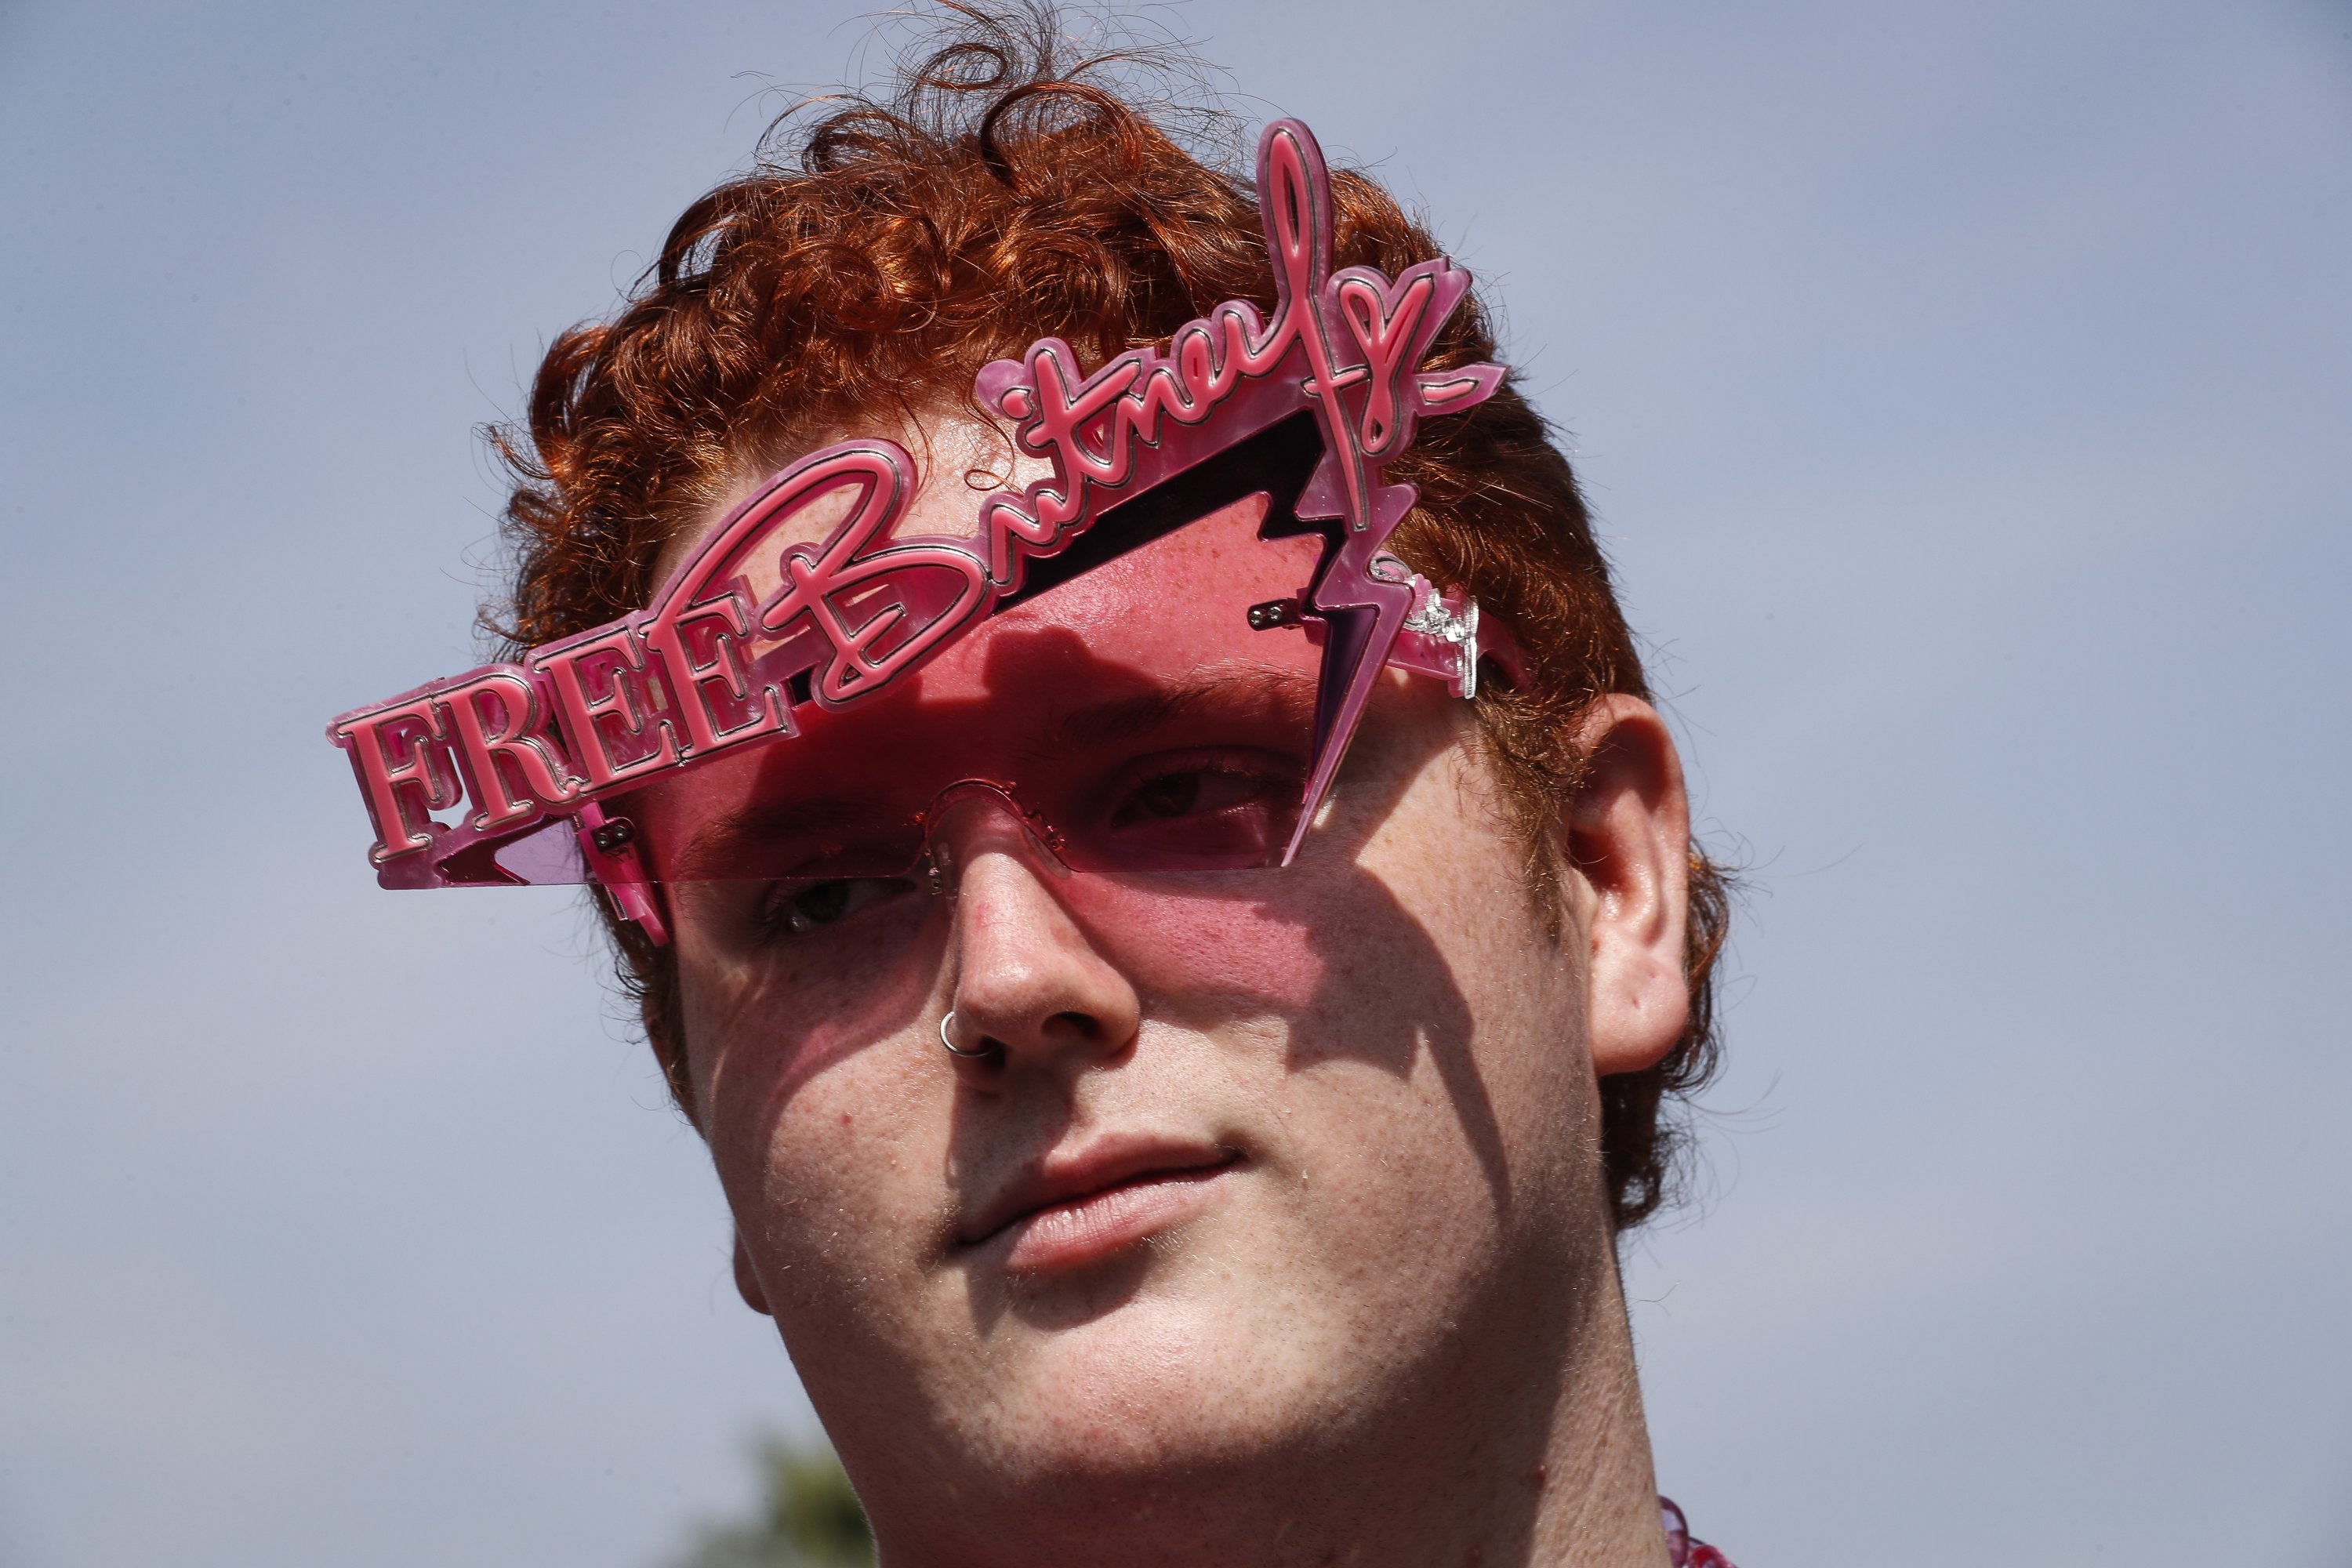 Alejandro Sanz wears sunglasses with 'Free Britney' written on top during a rally outside the Stanley Mosk Courthouse in Los Angeles, California, U.S., Sept. 29, 2021. (EPA Photo)